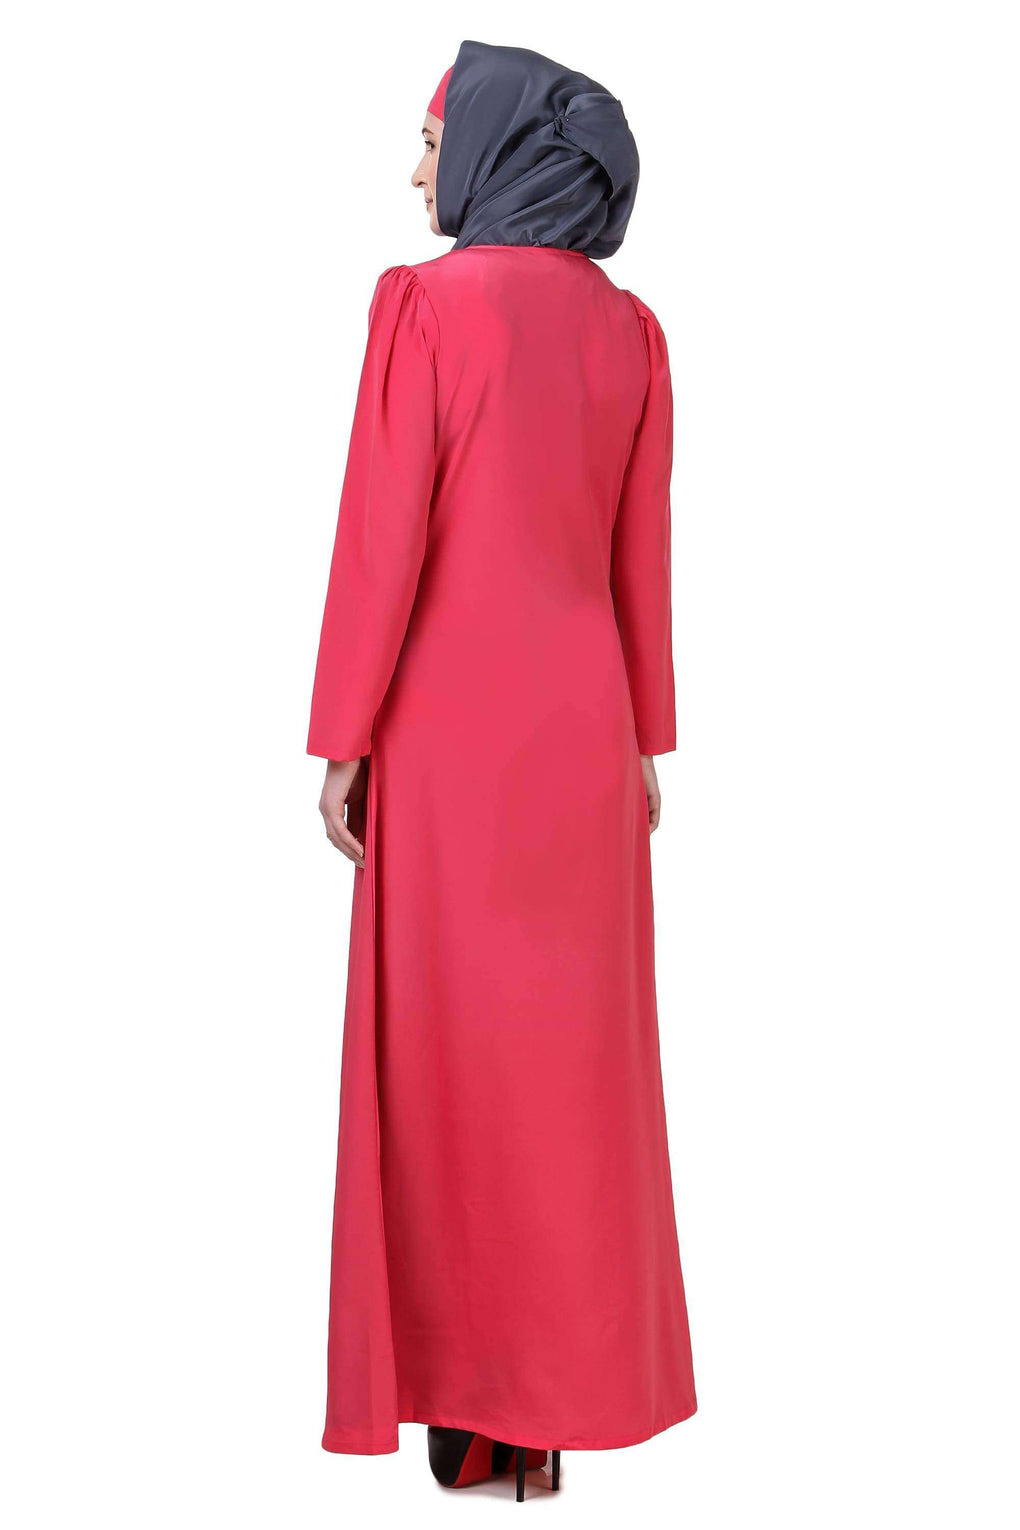 Sweet Pink & Grey Split Front Abaya